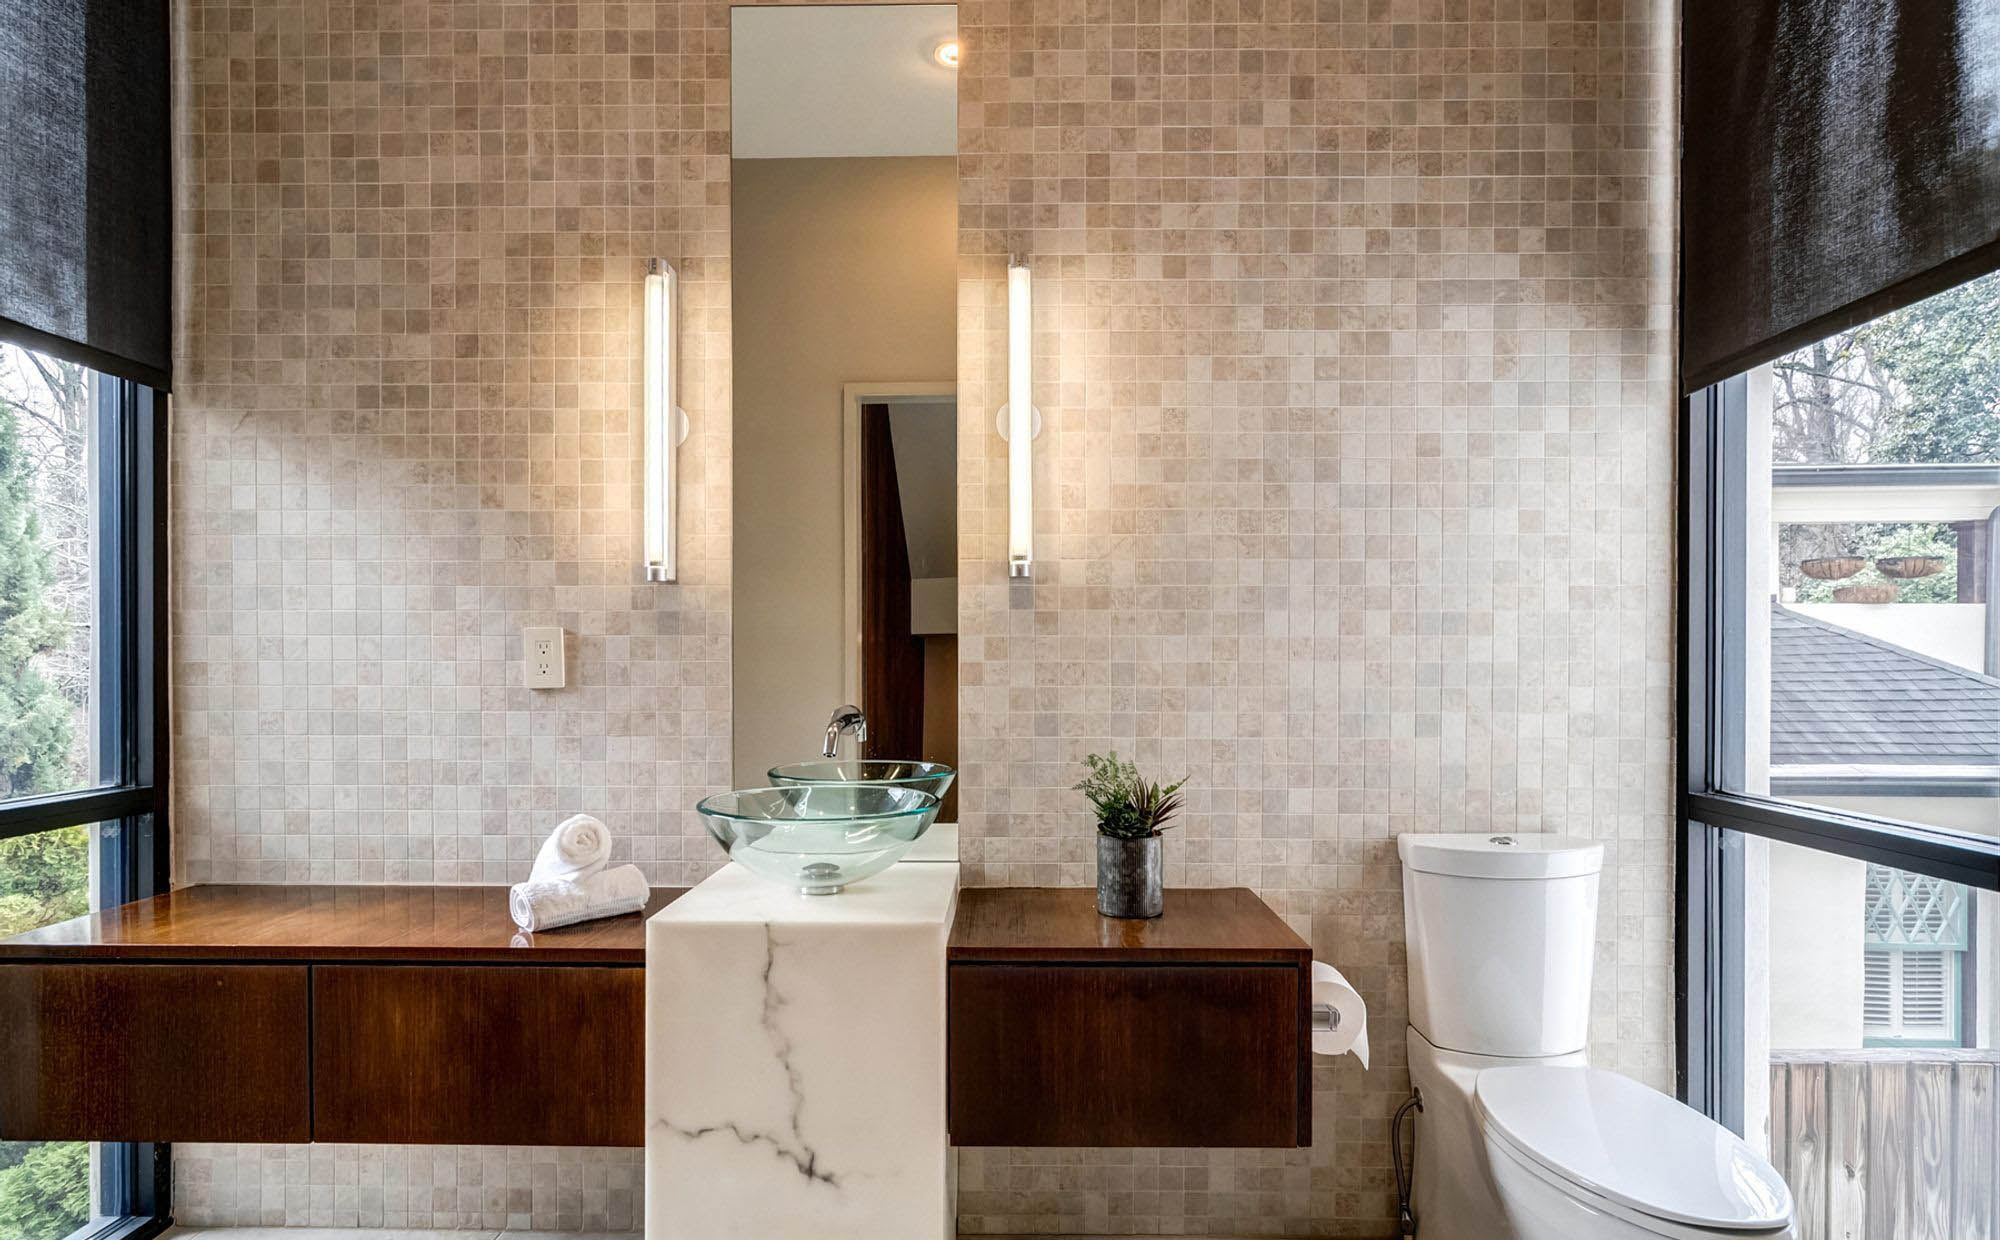 Modern bathroom with vertical wall sconces aside a tall thin mirror, marble and wood cabinetry with glass bowl sink.